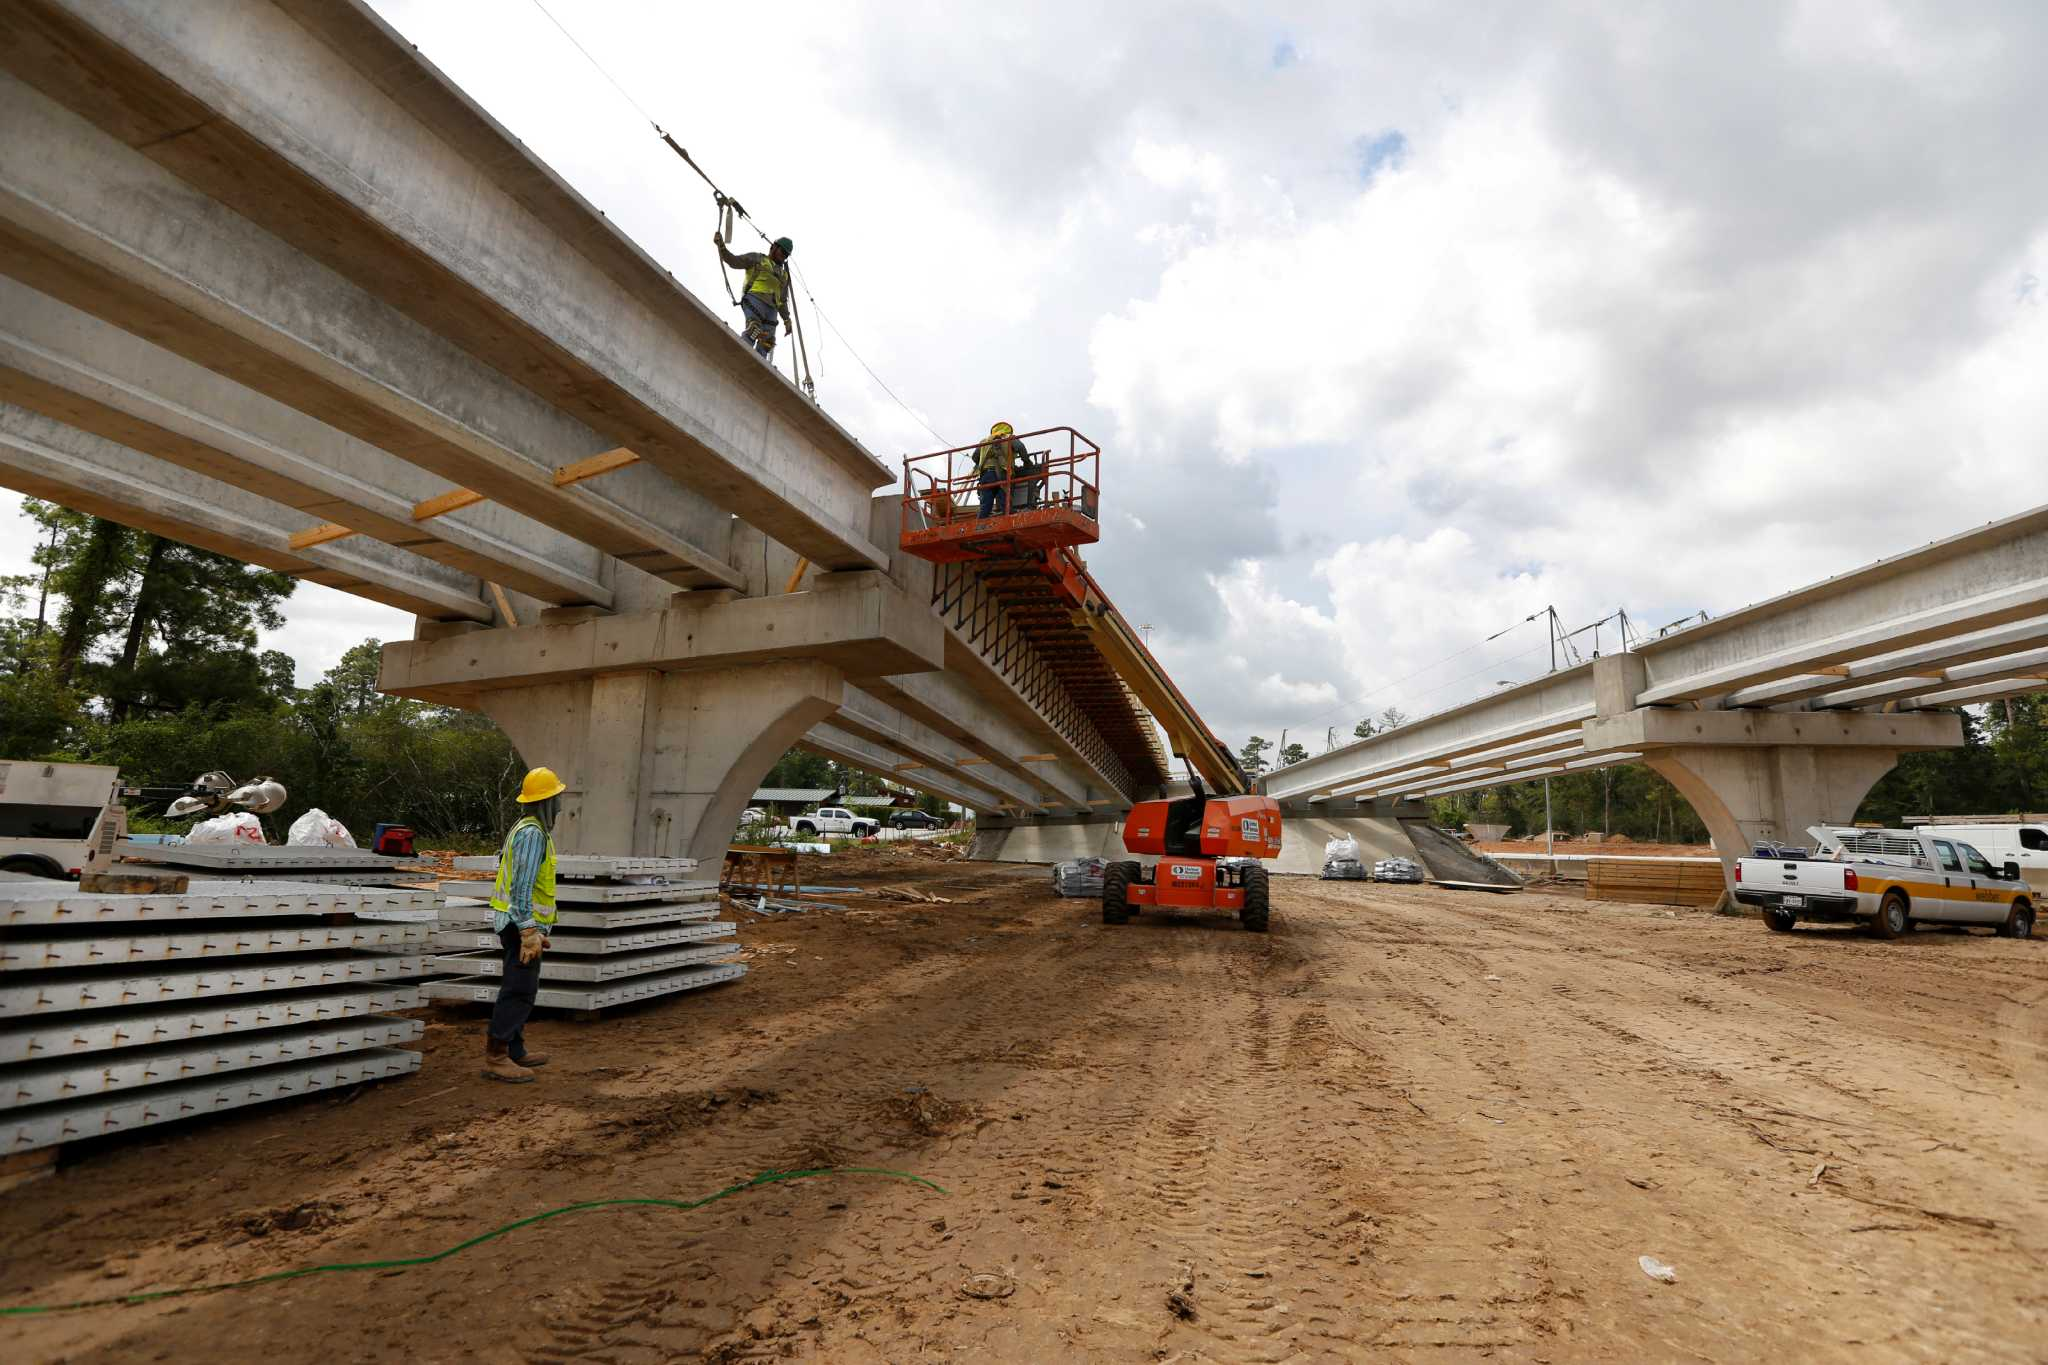 Hardy Toll Road Improvements Will Help Accommodate Growth